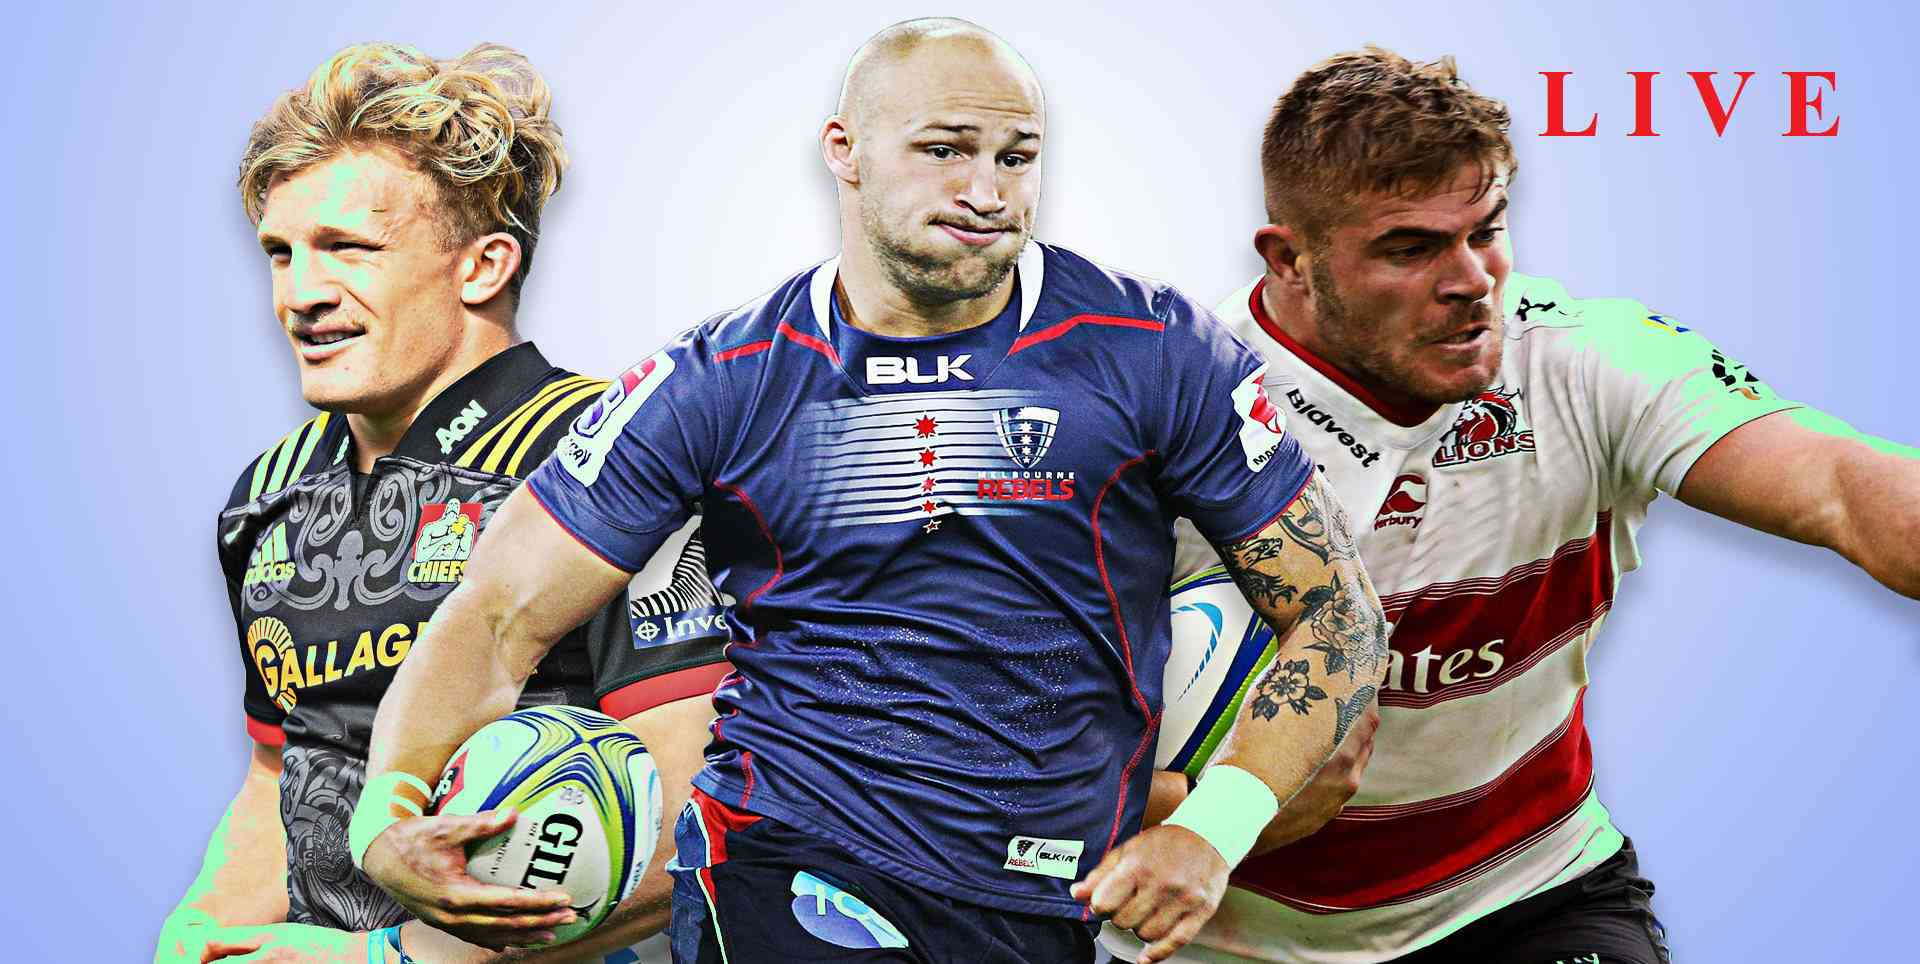 cardiff-blues-vs-scarlets-rugby-streaming-live